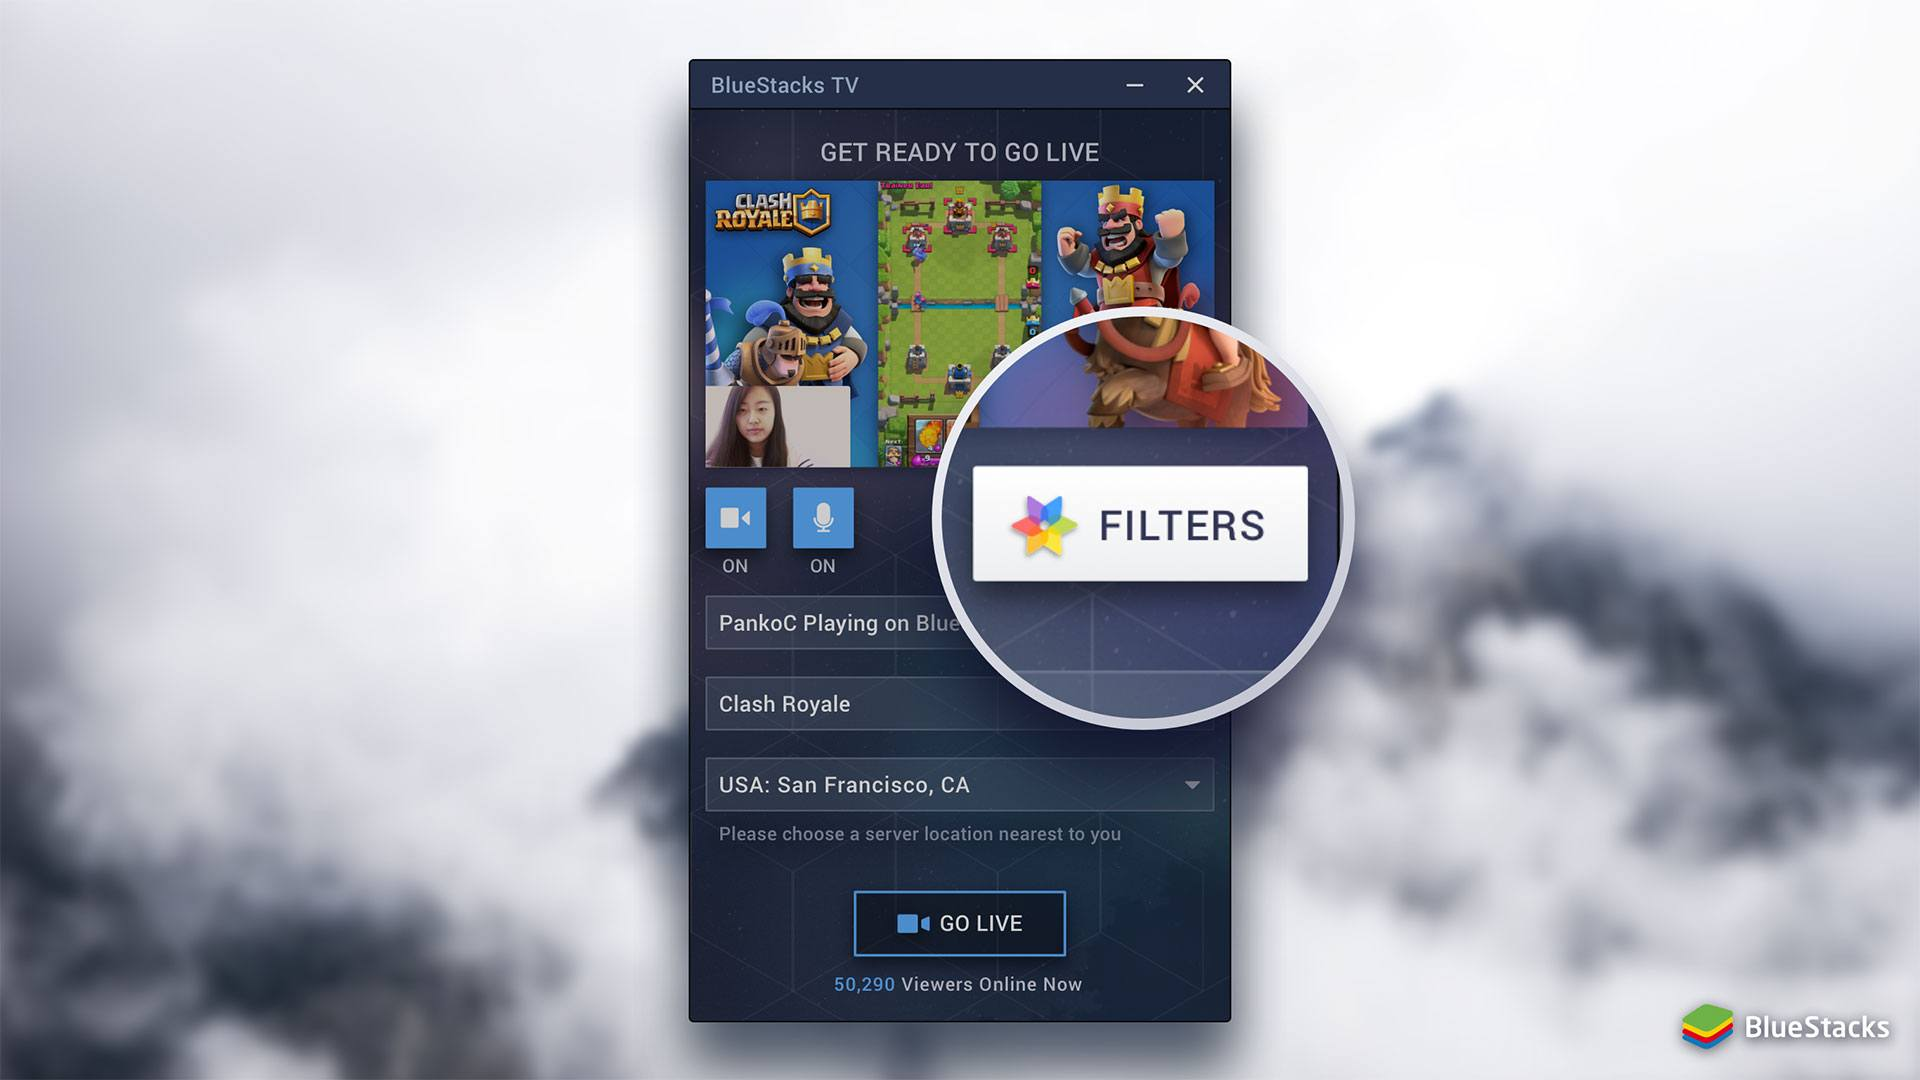 Filters Button